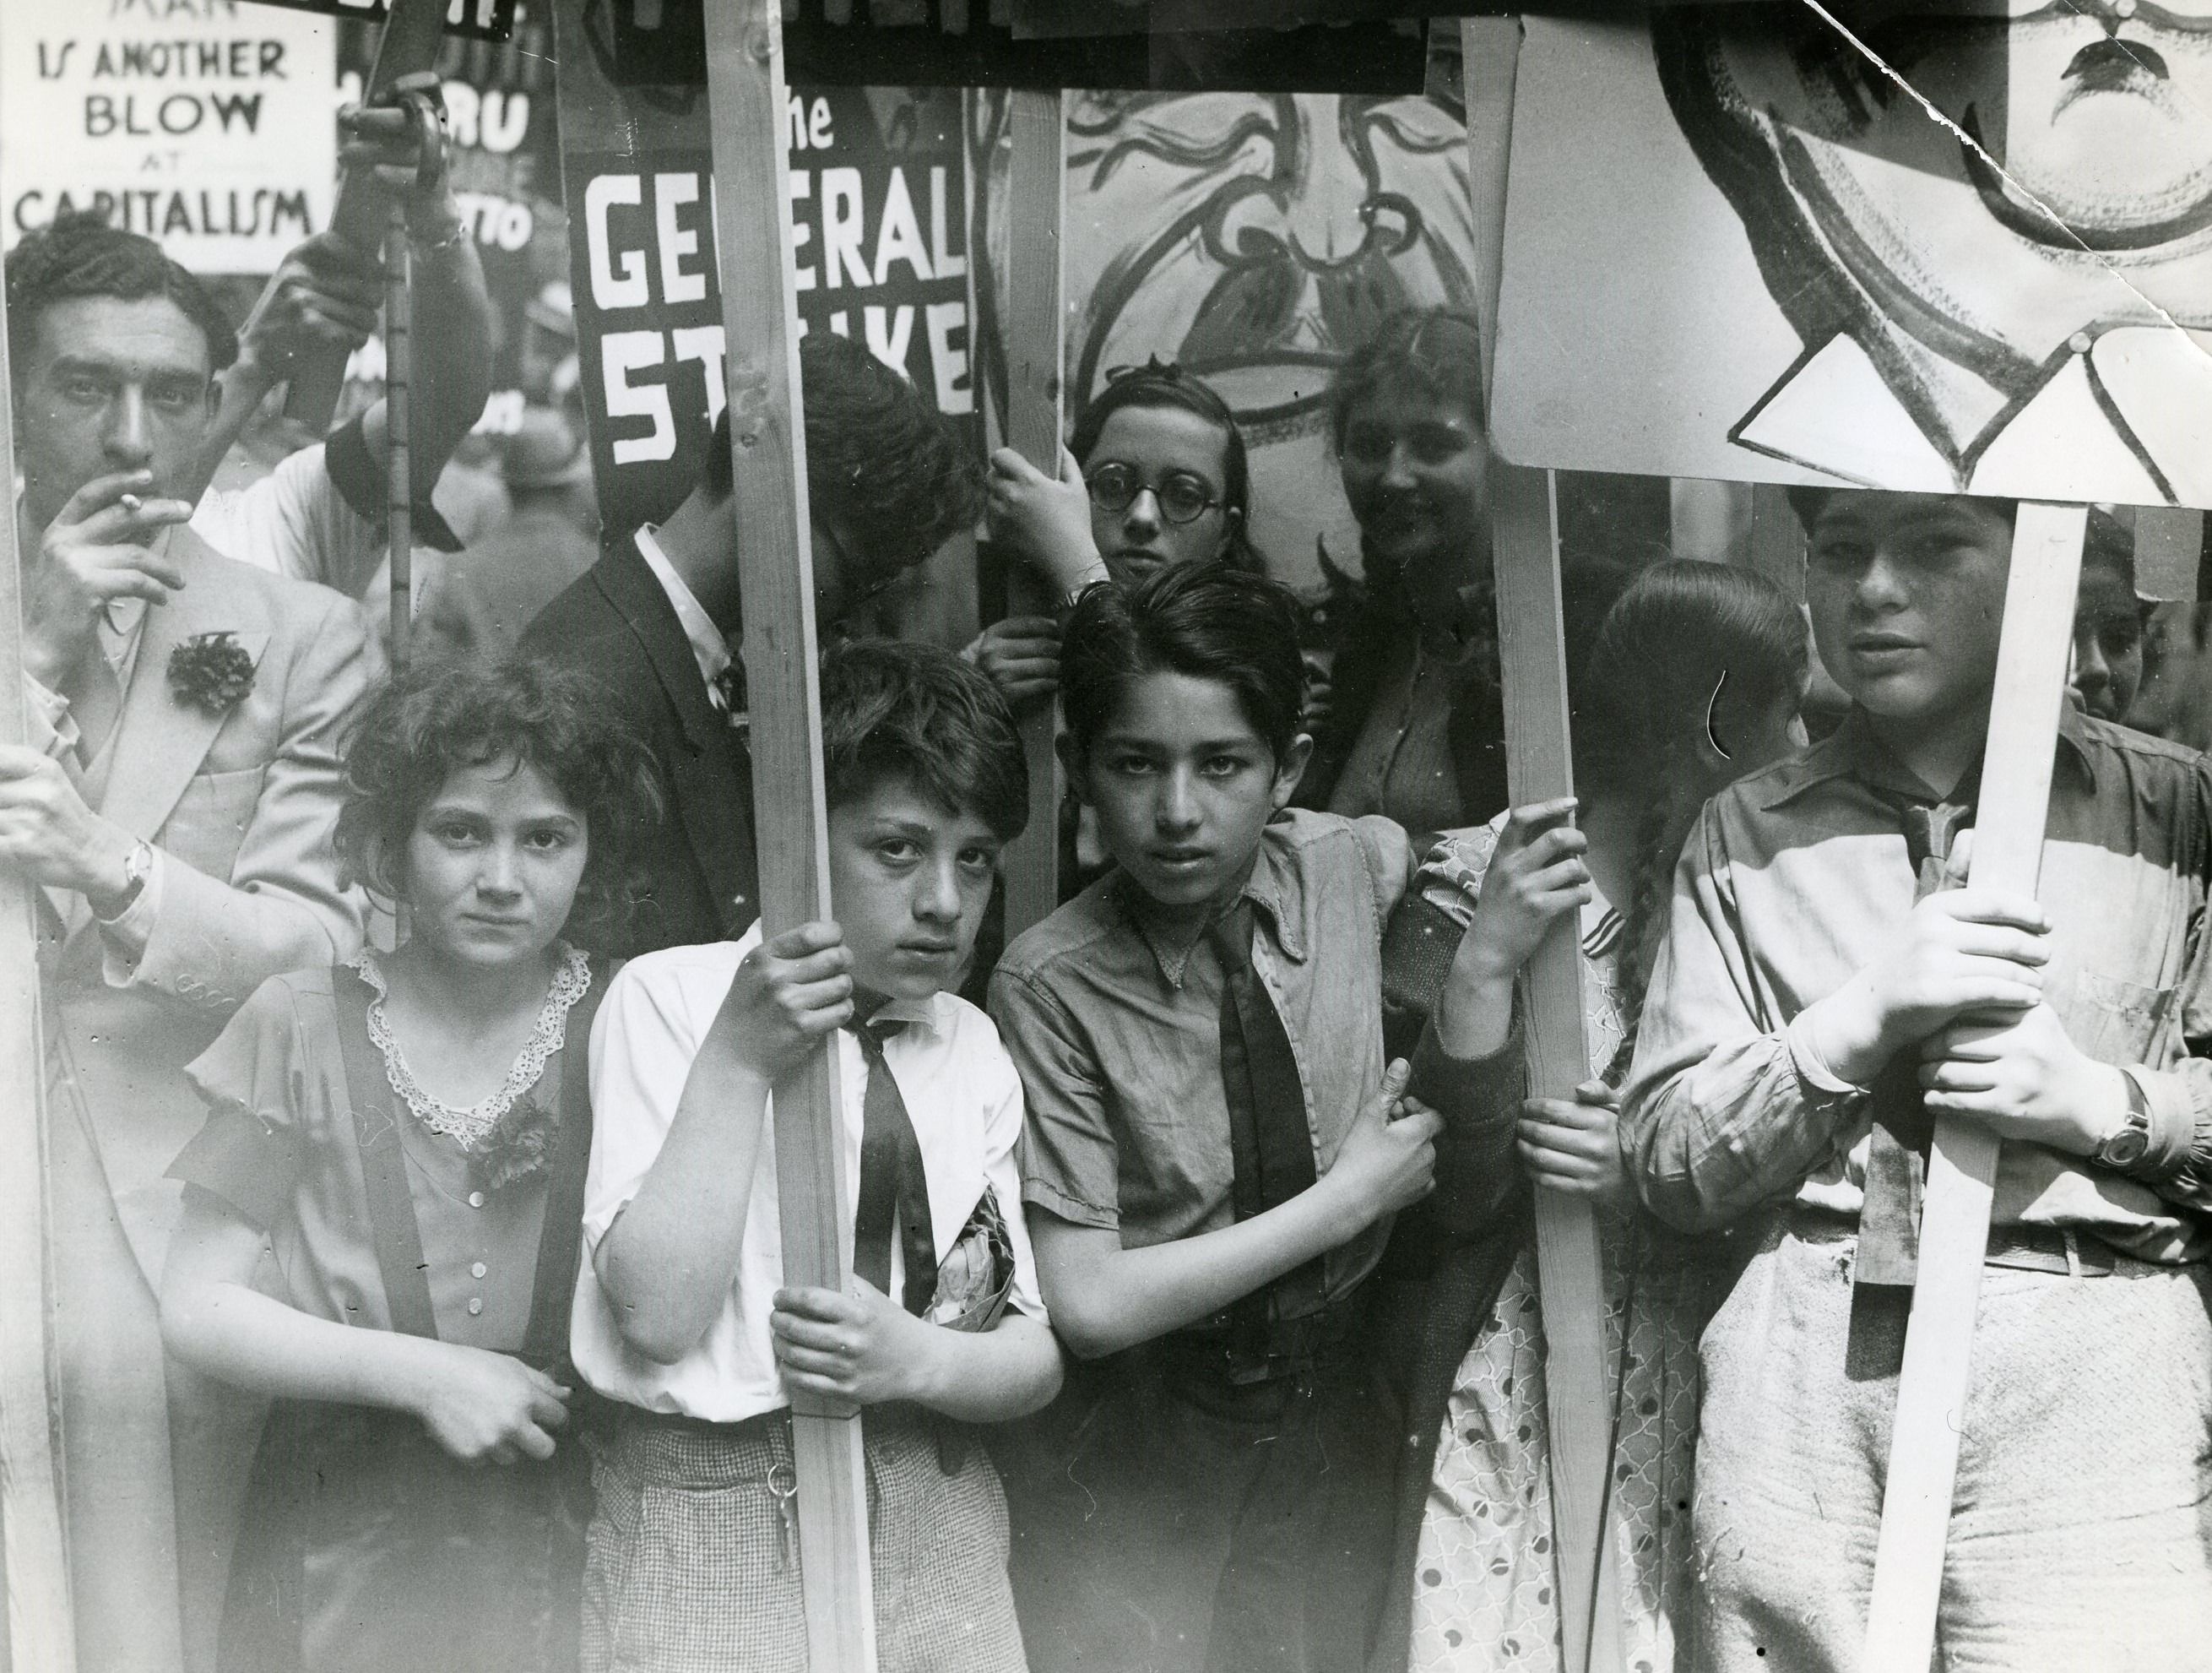 Attracting New York's labor movement, the May Day anti-Fascism march in 1934 started out at Madison Square Park and was attended by 300,000 people.